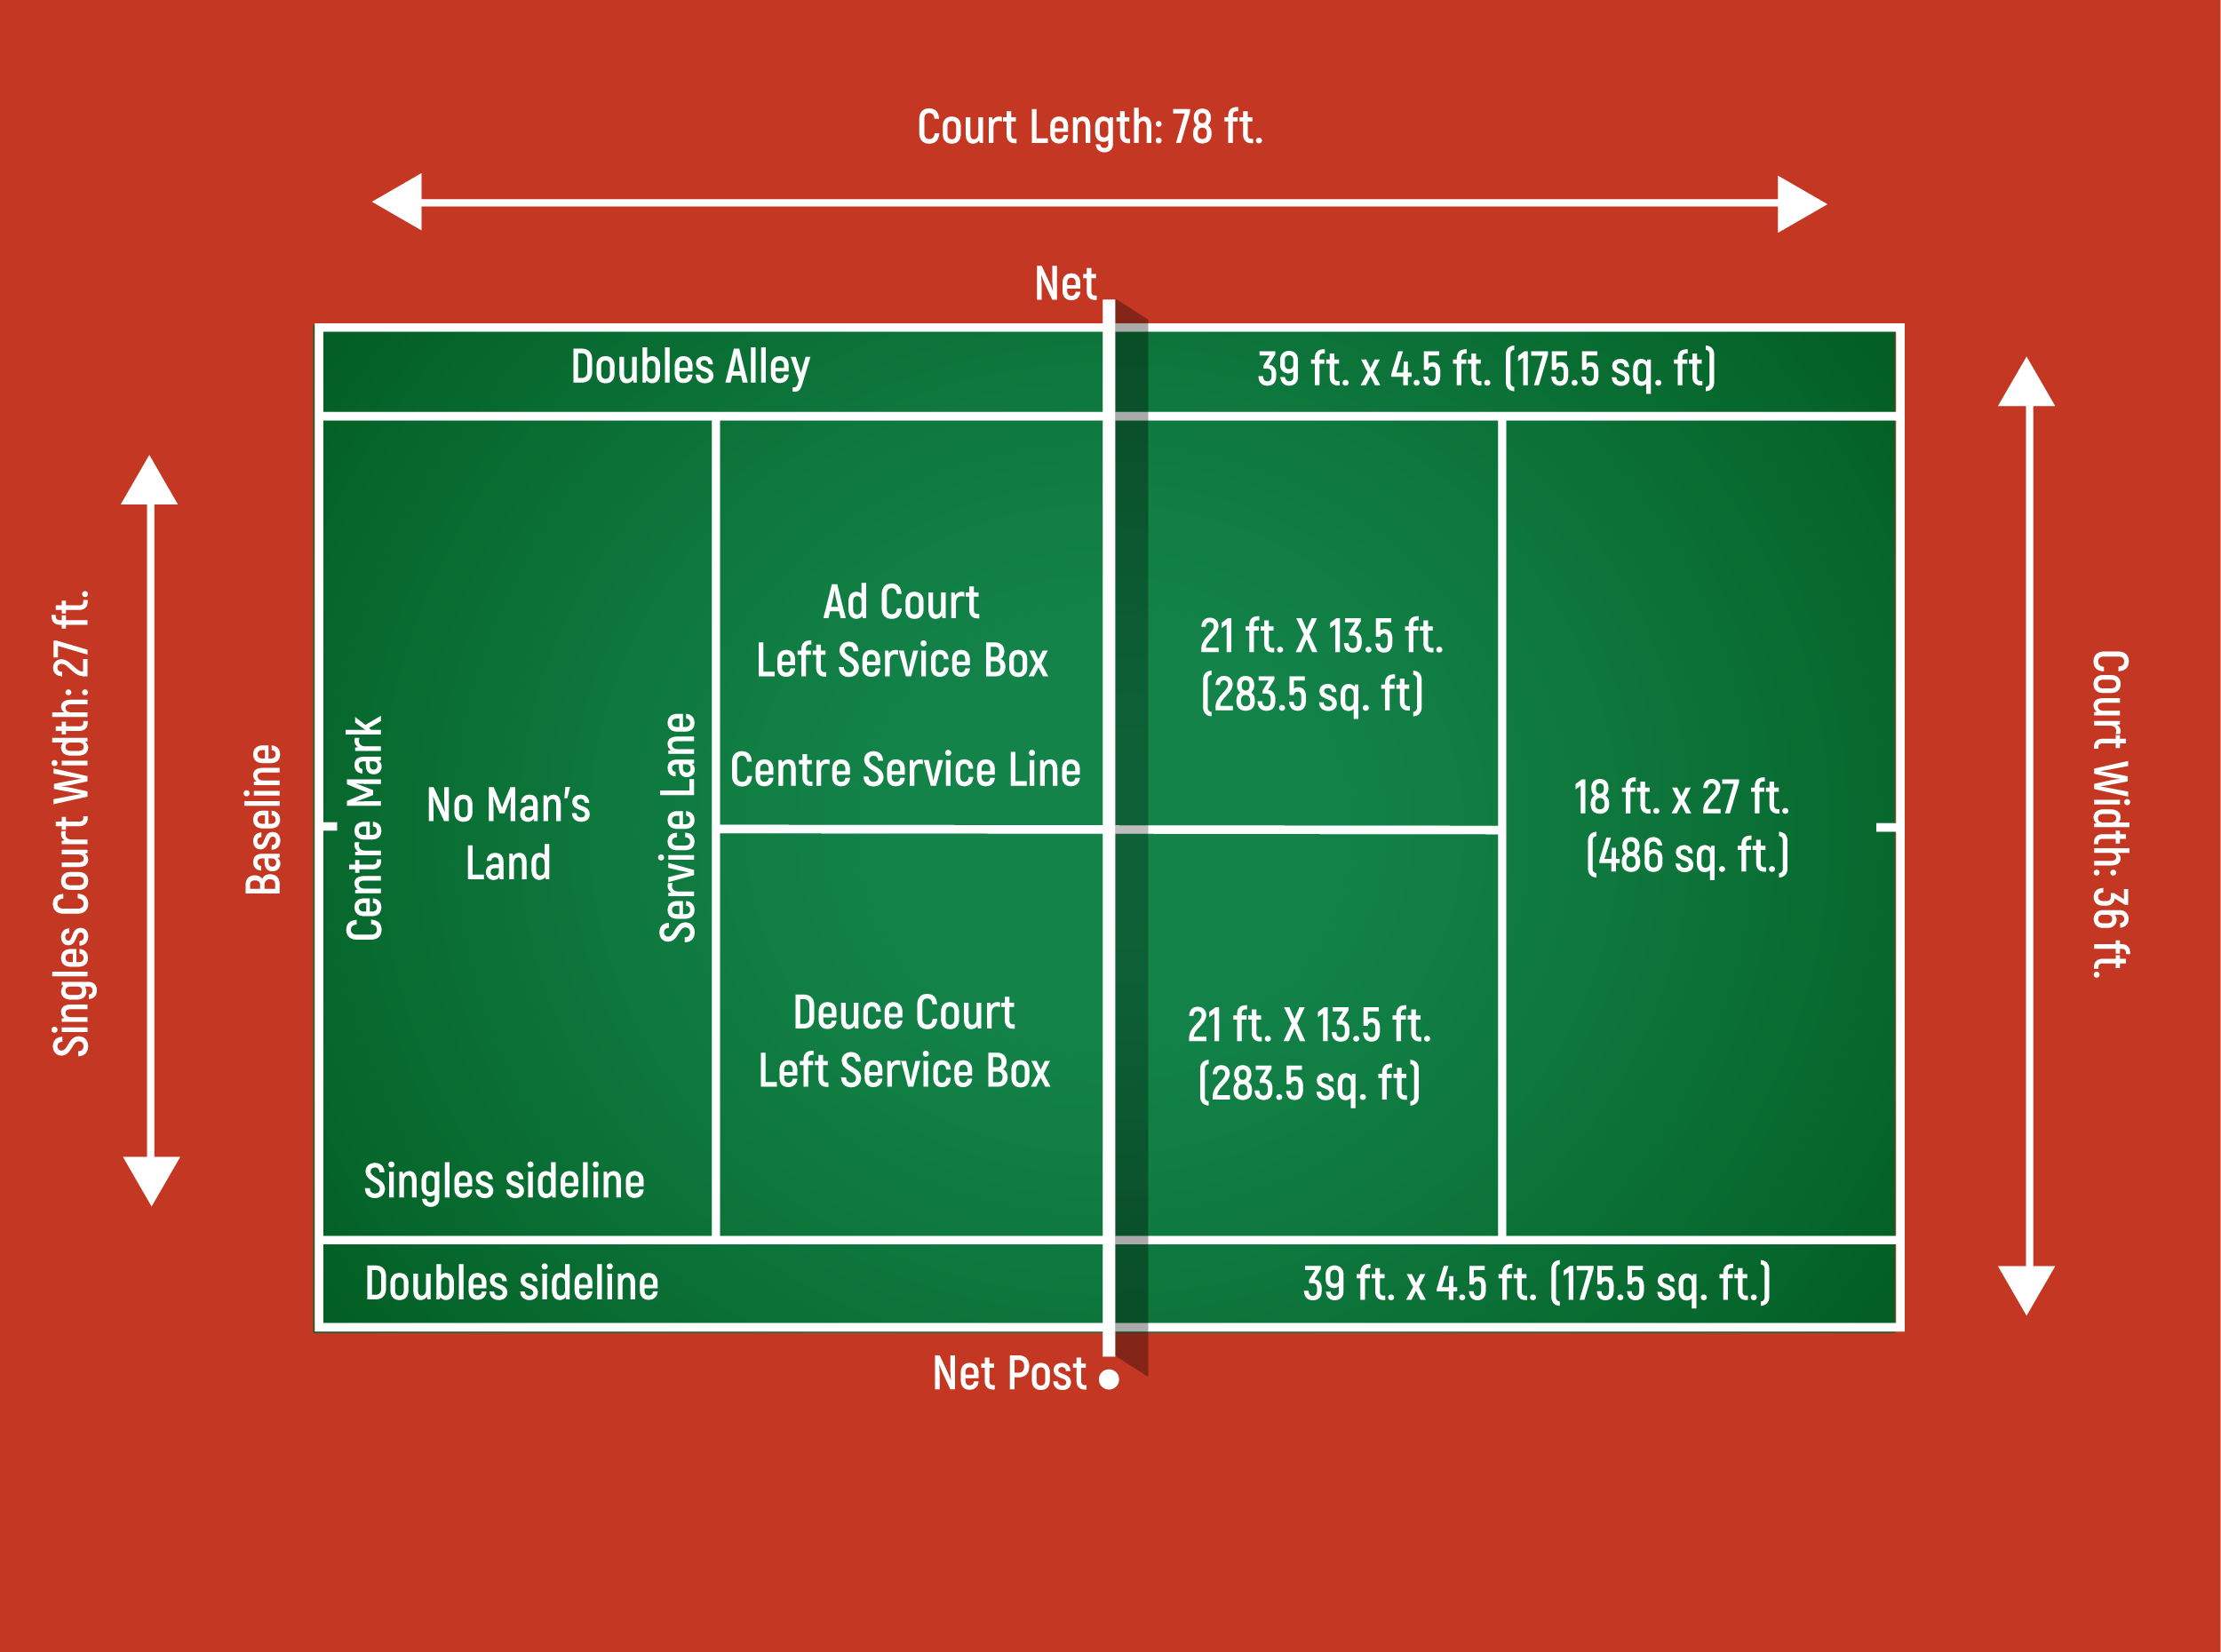 Tennis Court Dimensions How Big Is A Tennis Court